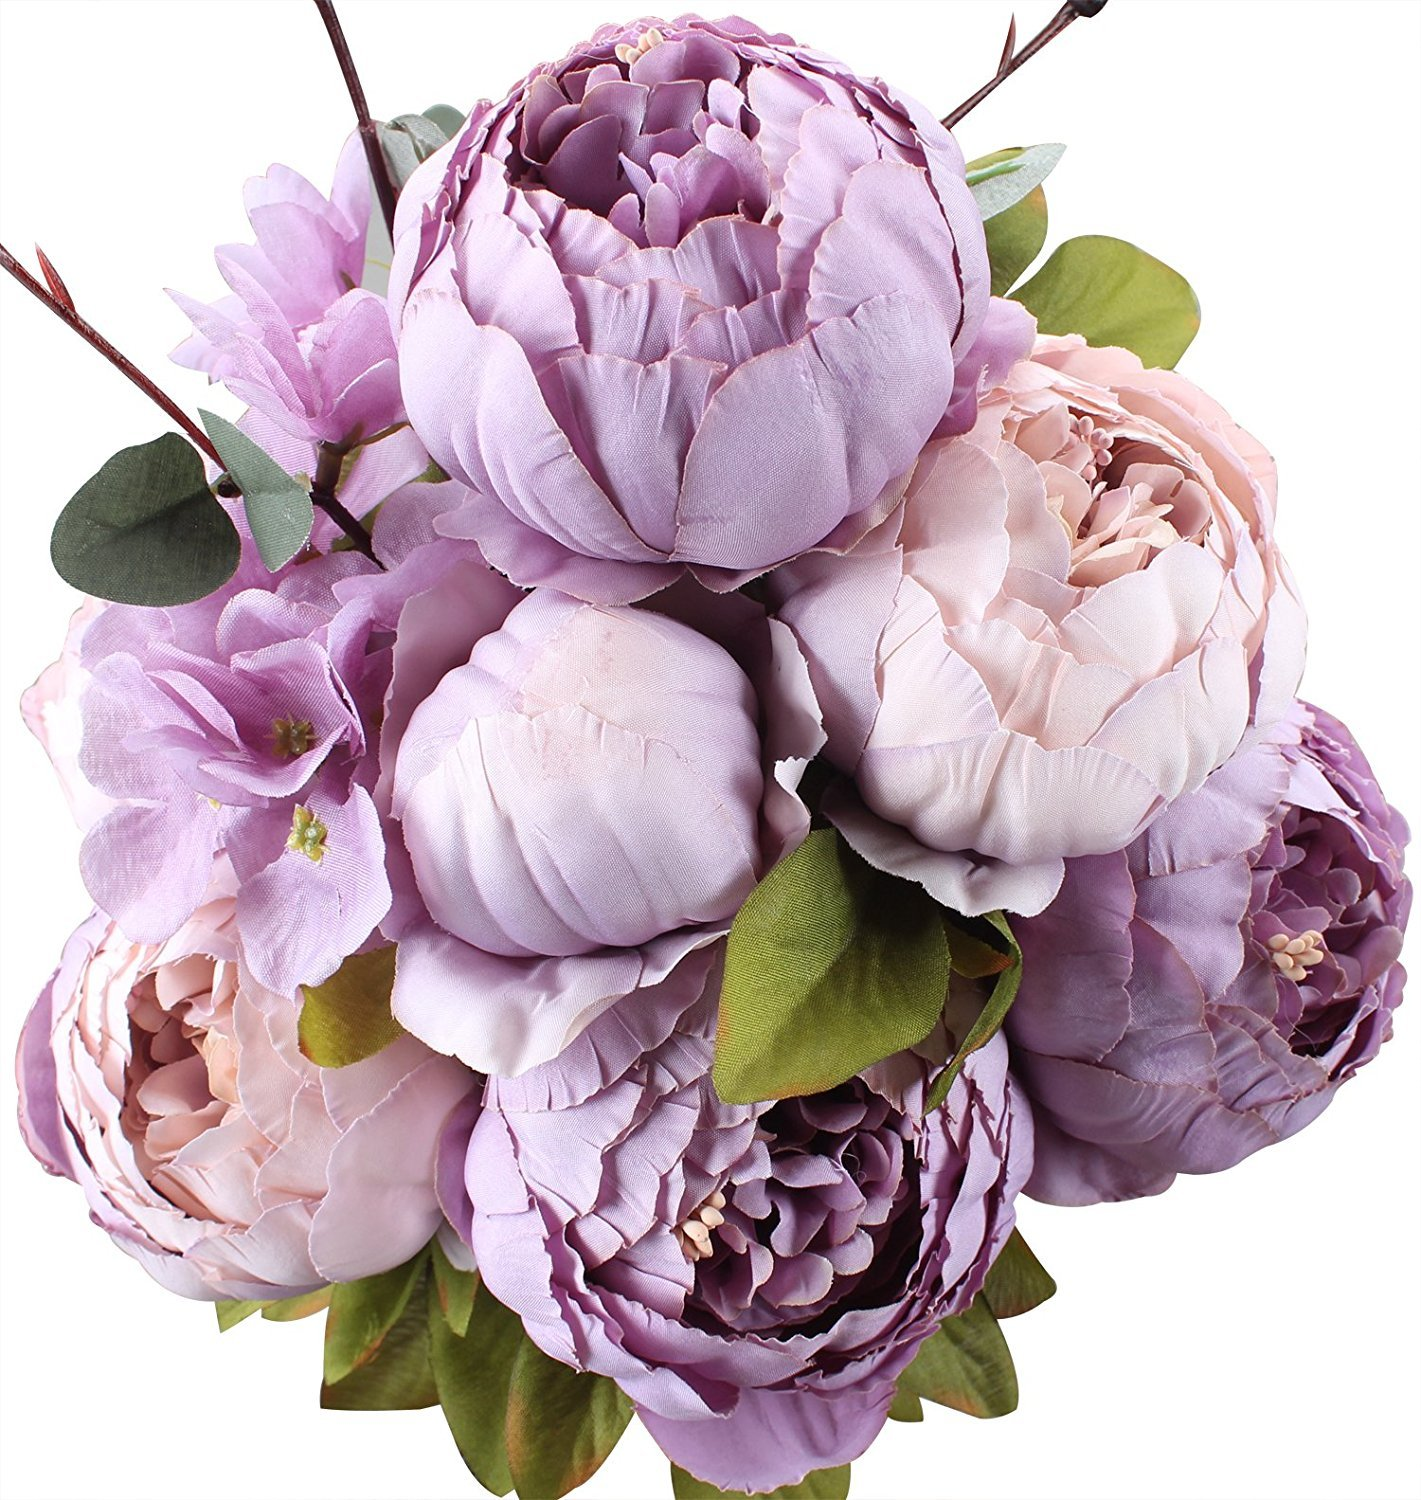 Amkun Fake Flowers Vintage Artificial Peony Silk Flowers Bouquet Wedding Home Decoration, Pack of 1 (Champagne)